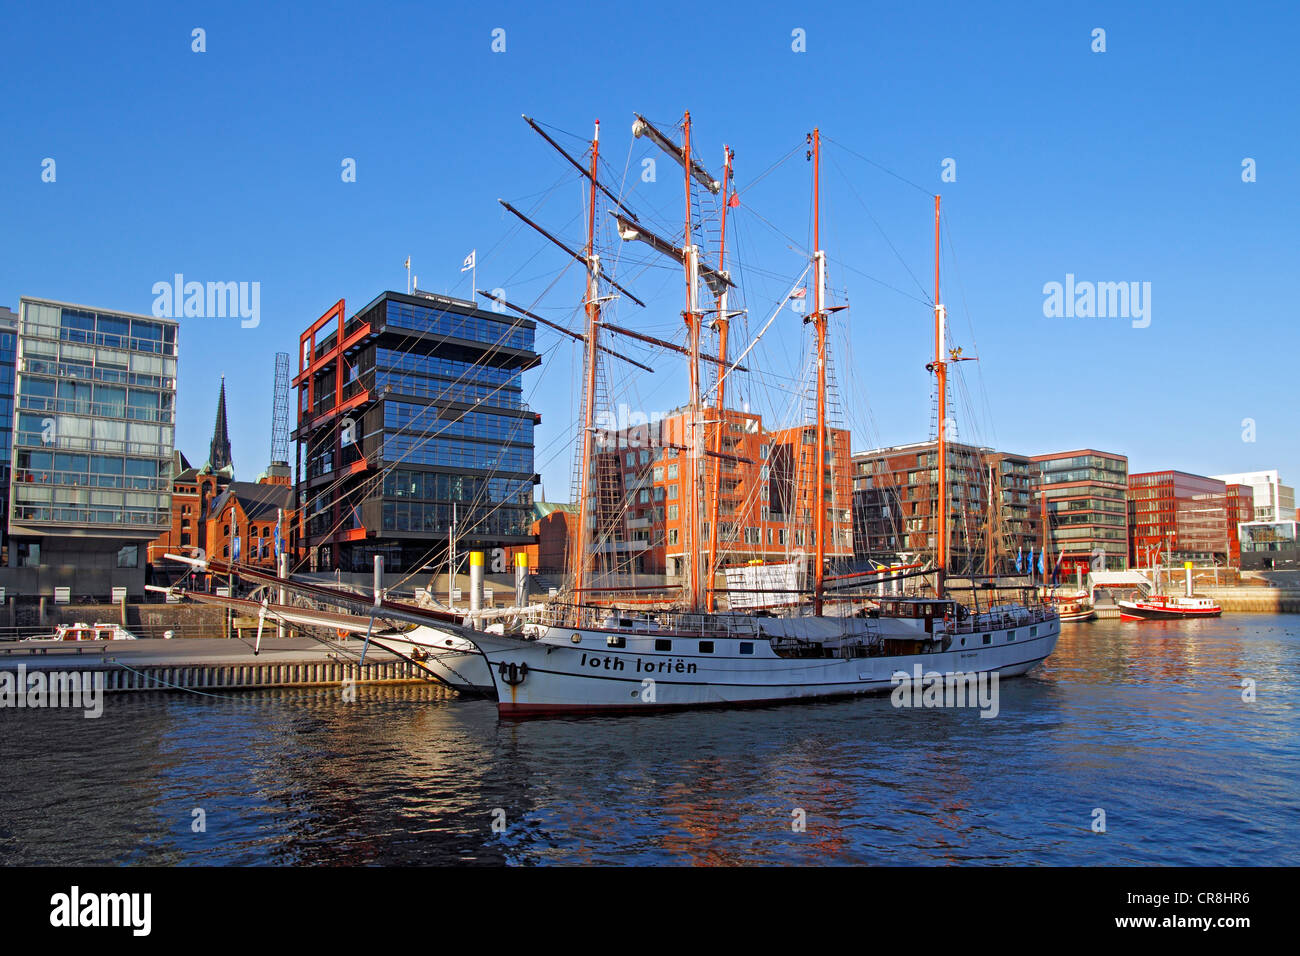 Modern luxury apartments, office buildings, historic ships, Magellan-Terrassen terraces and traditional ship harbour, - Stock Image